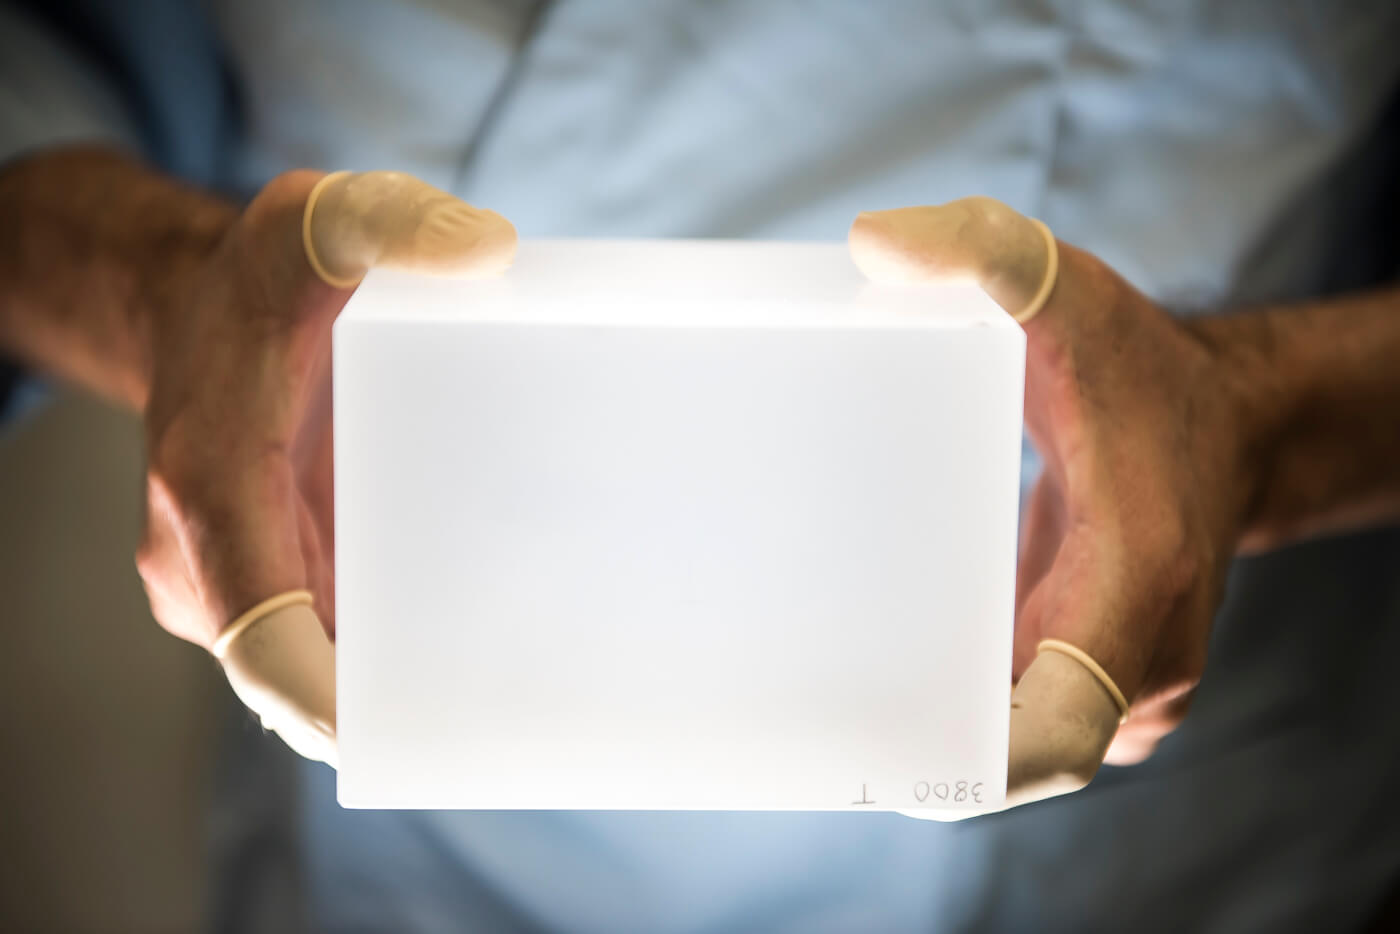 Lab tech holding optical glass sample.